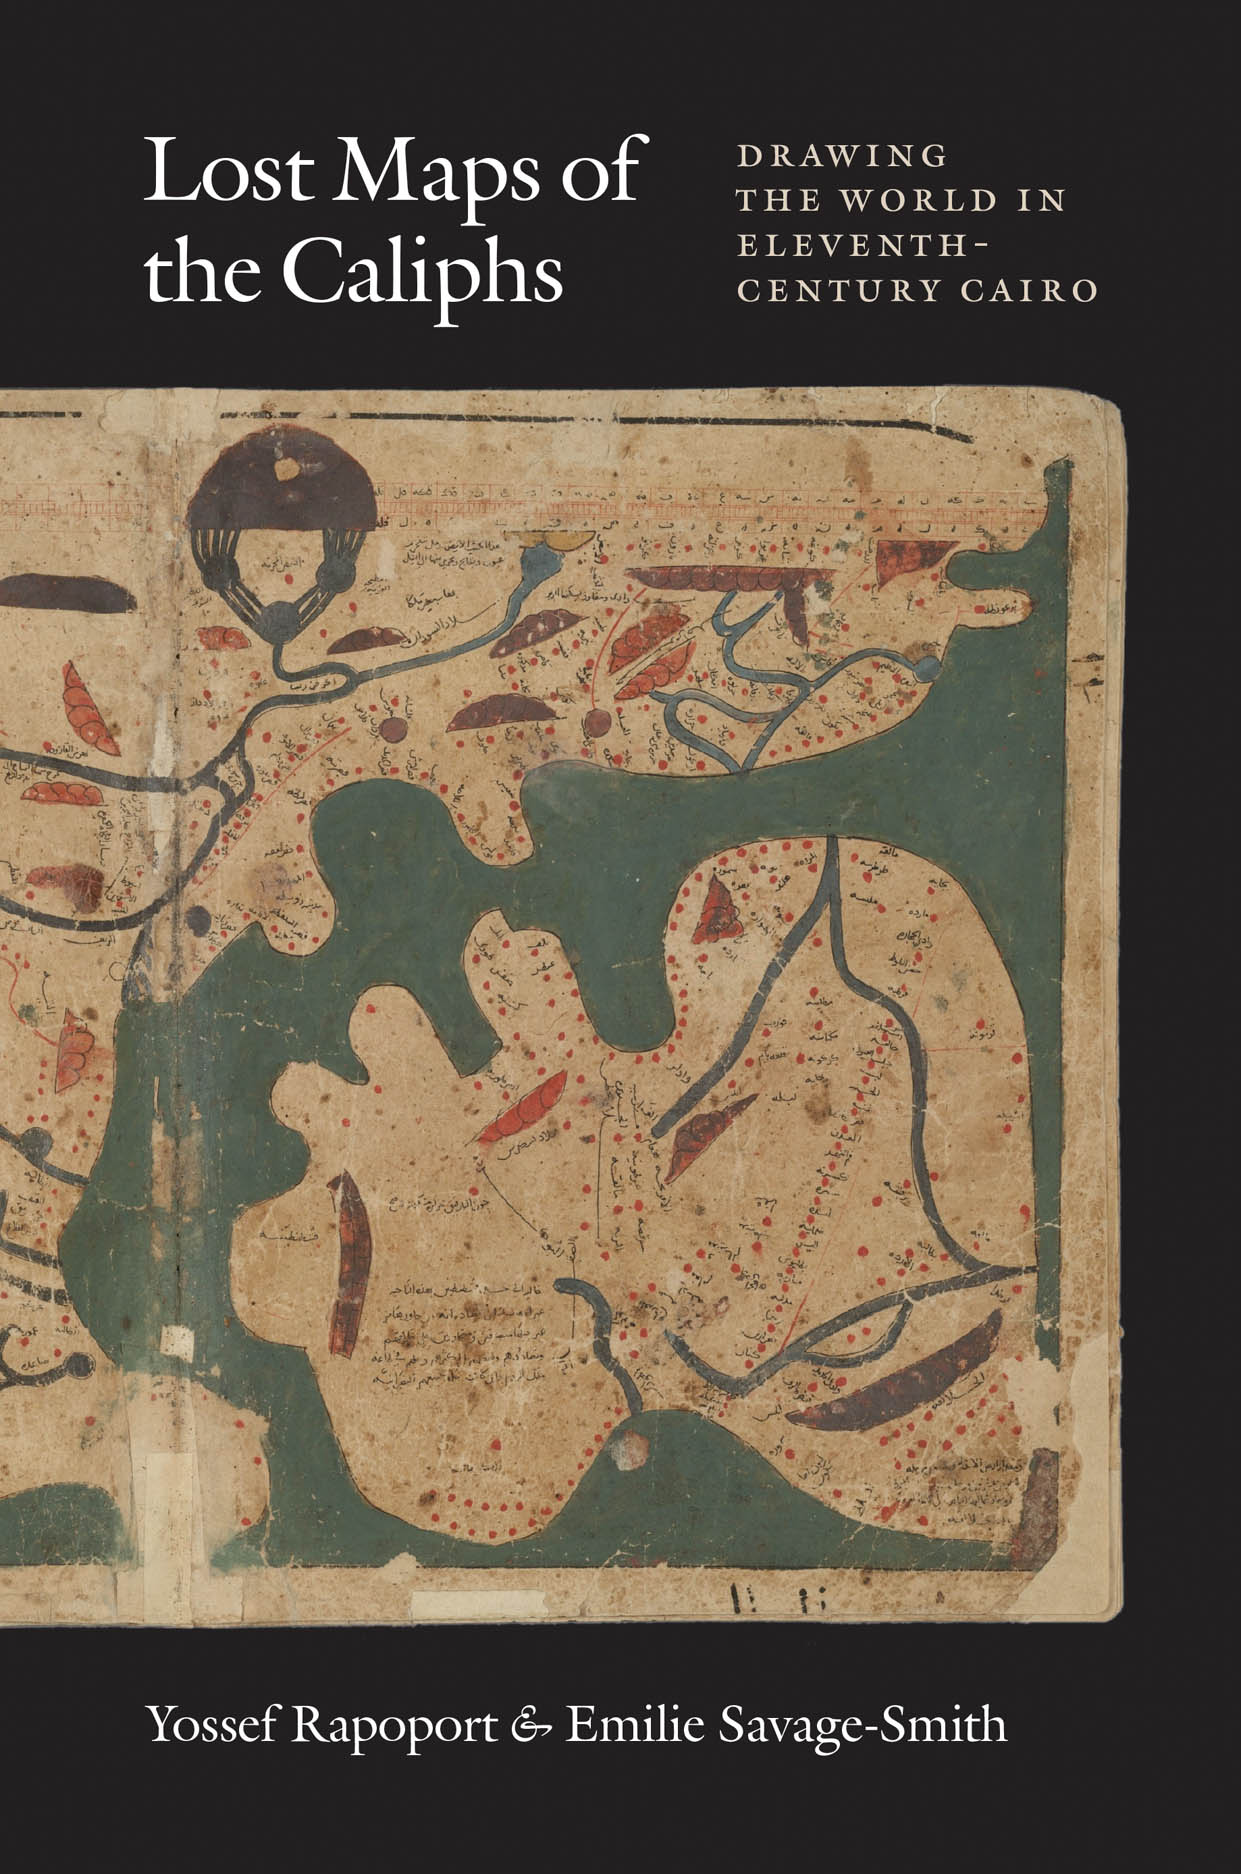 Lost Maps of the Caliphs: Drawing the World in Eleventh-Century Cairo